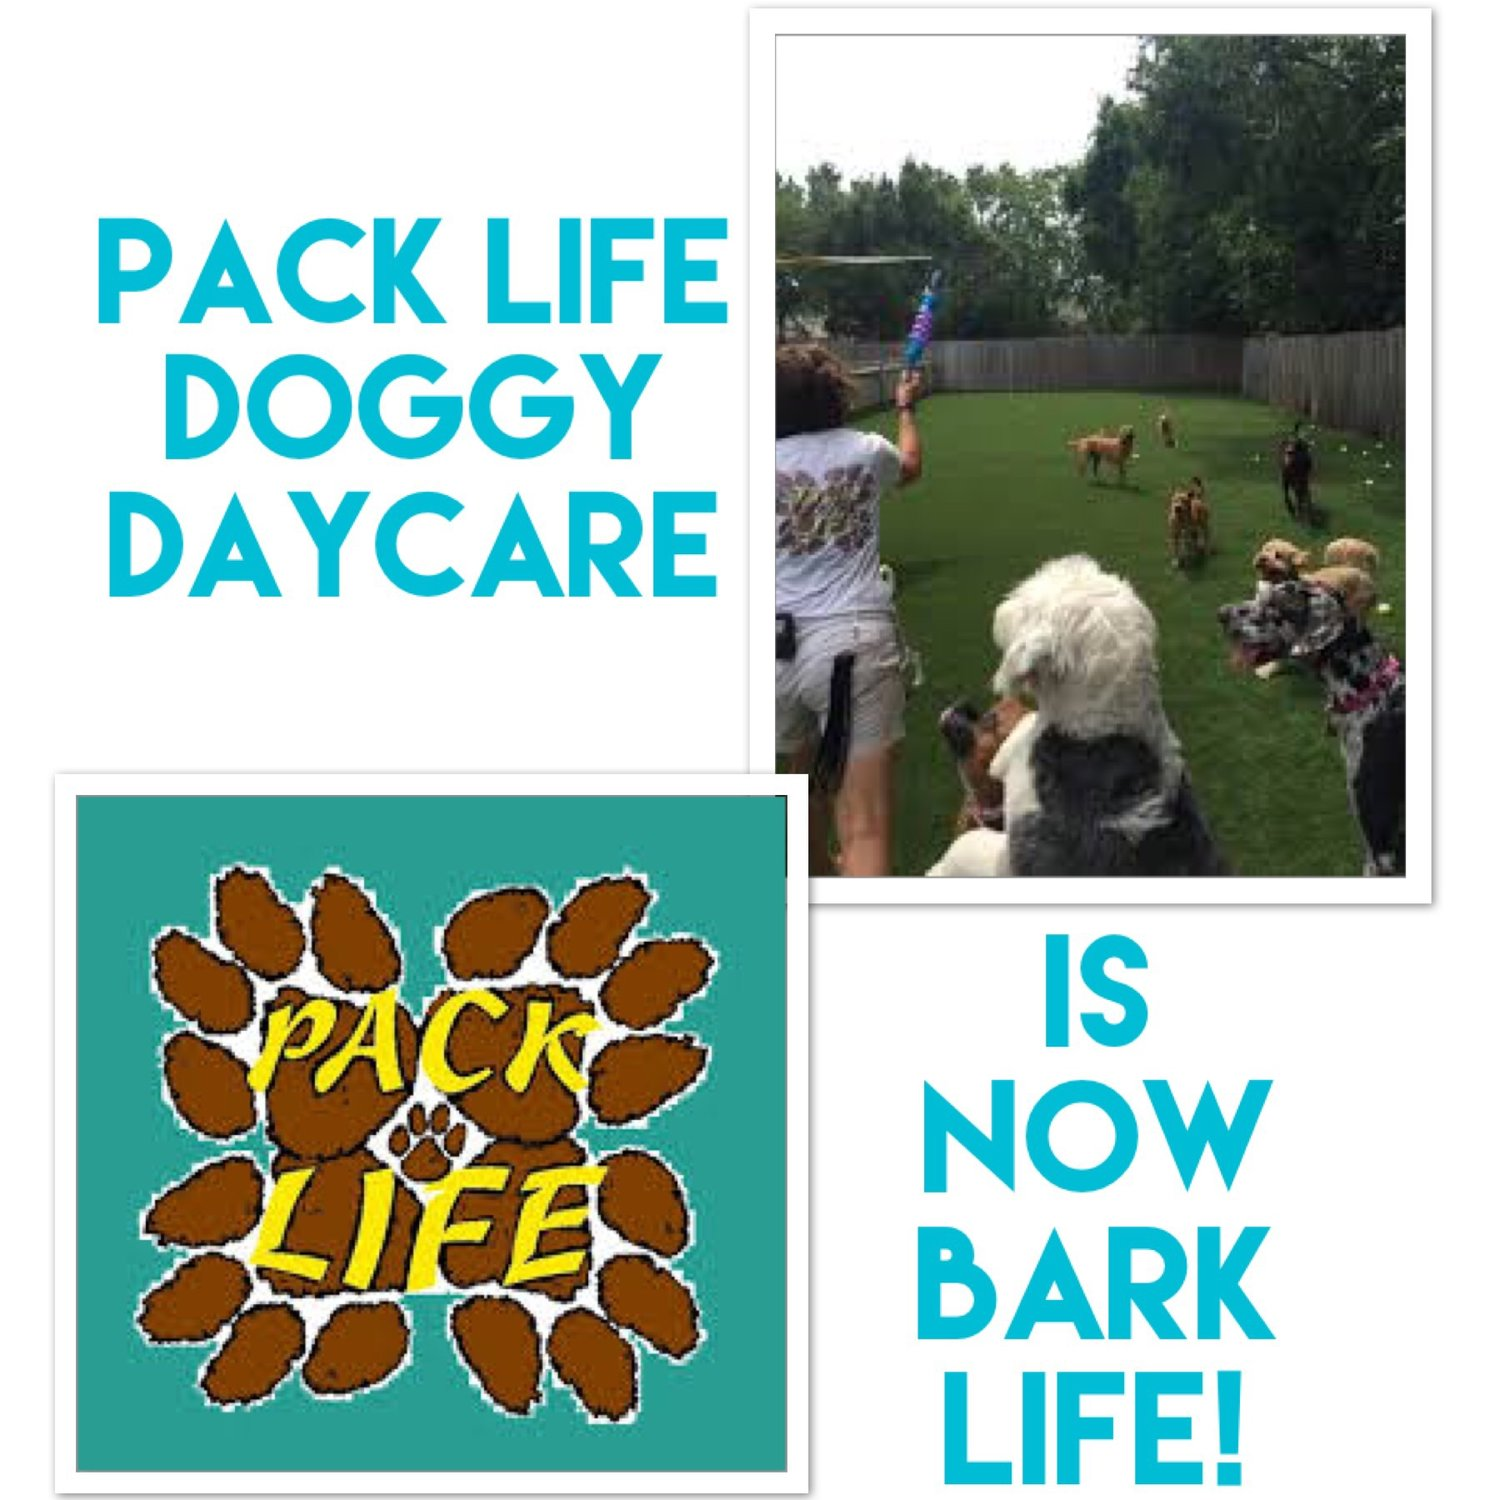 Pack Life is now Bark Life